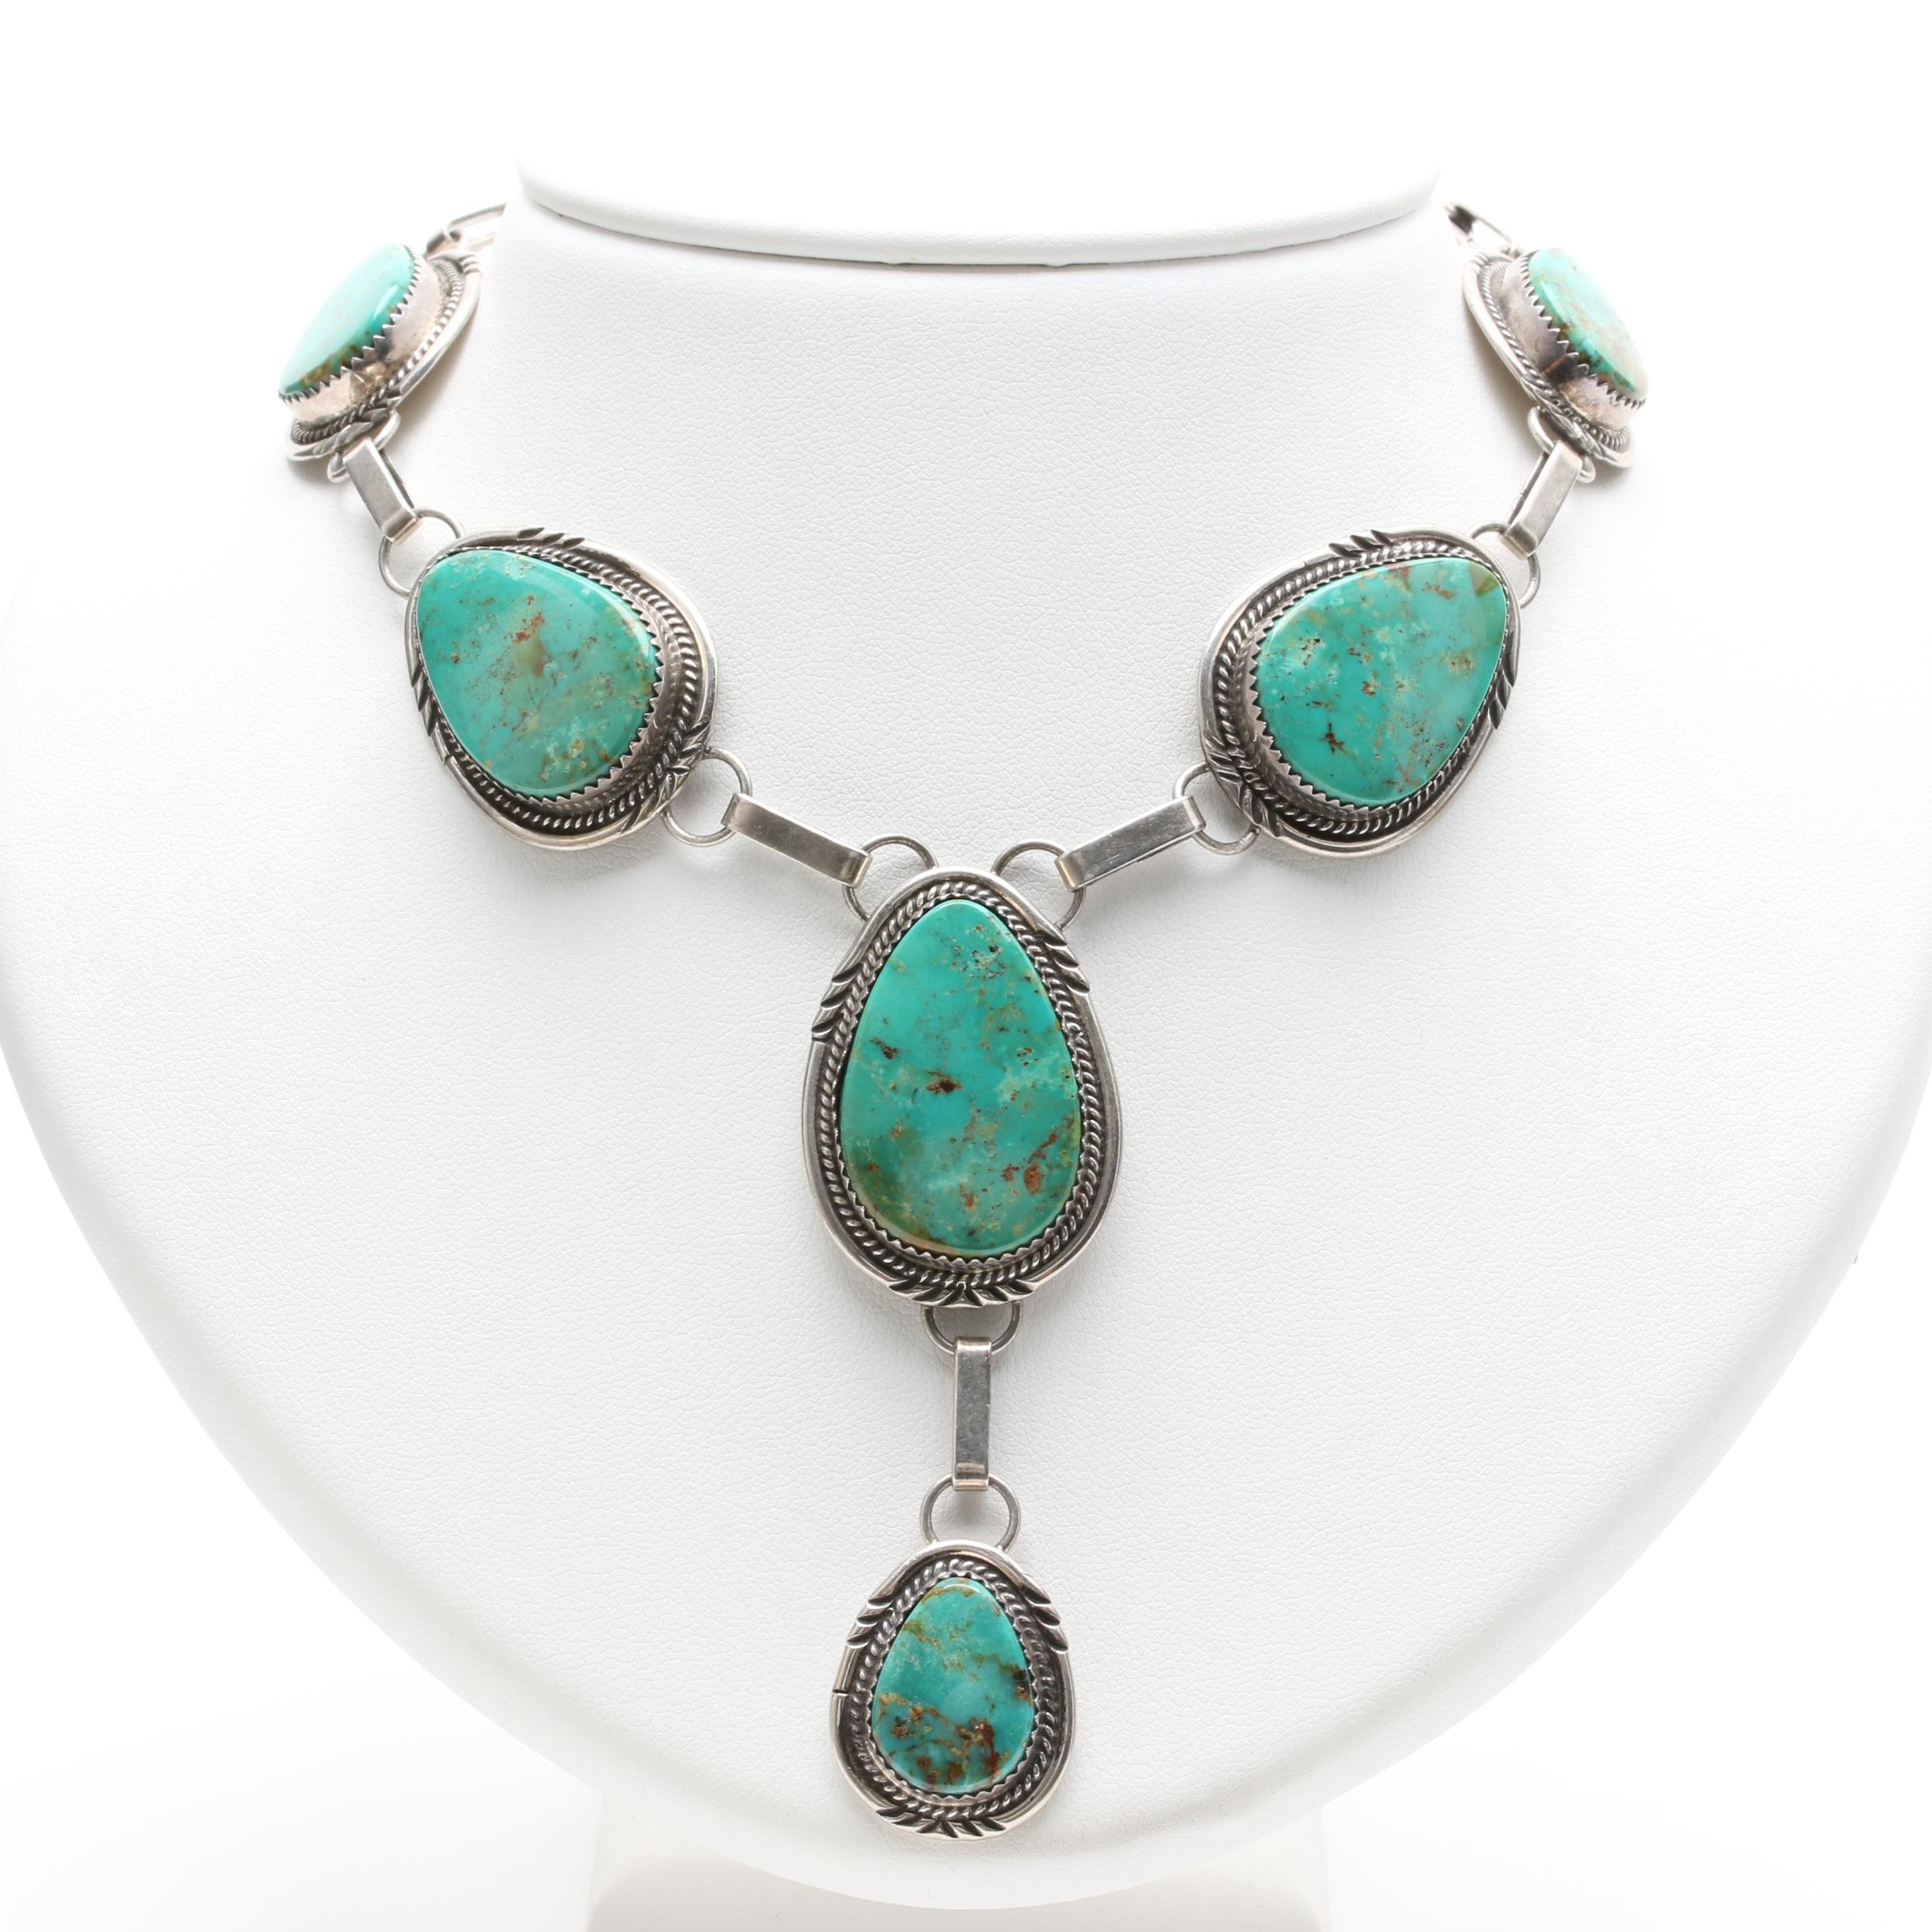 Southwest Style Sterling Silver Turquoise Necklace